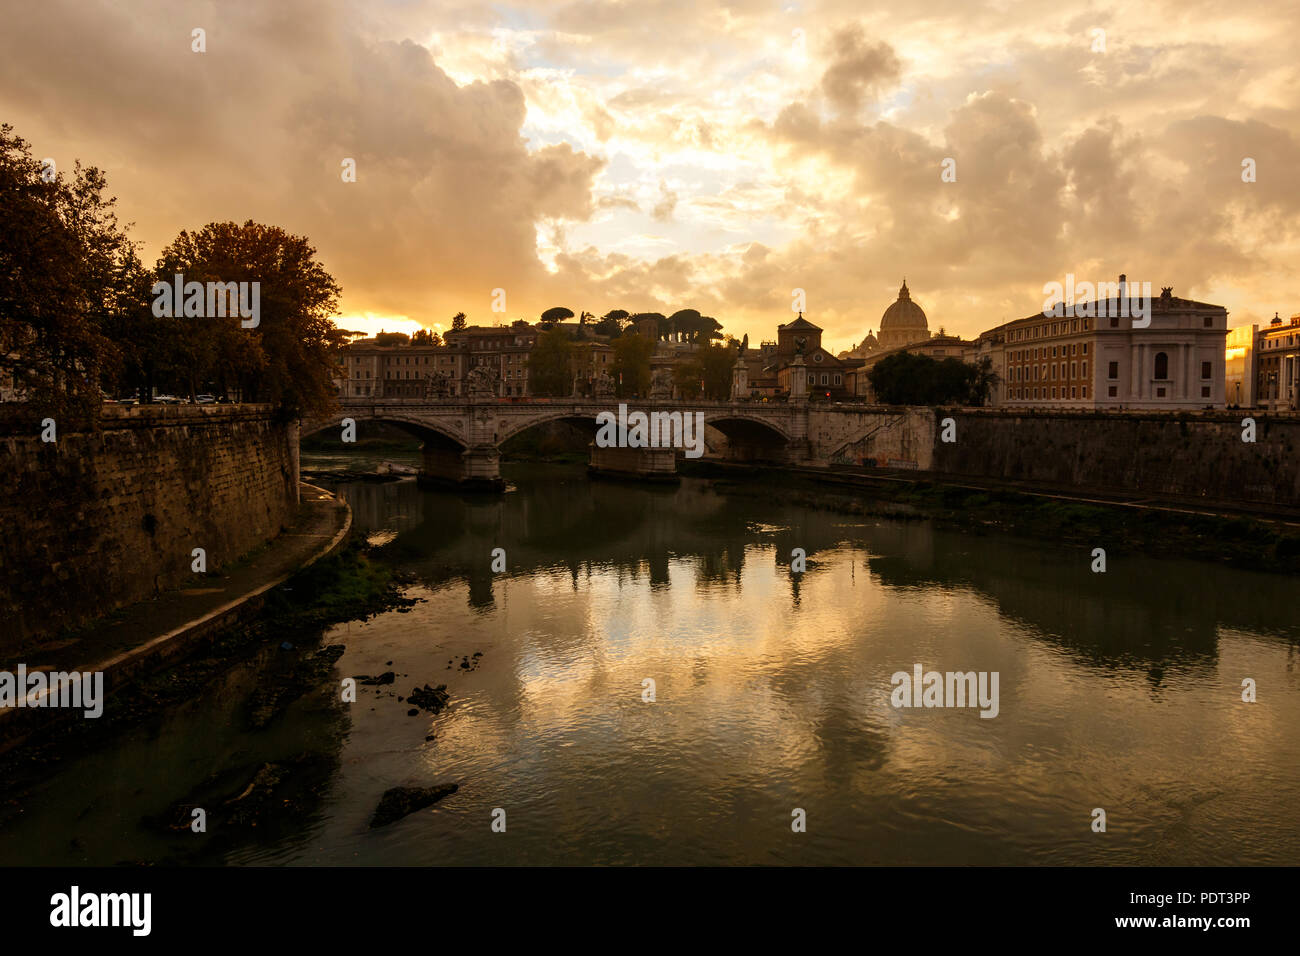 A view over the Tiber river with the Vittorio Emanuele II bridge and St. Peter's Basilica at the end. Rome, Italy. - Stock Image